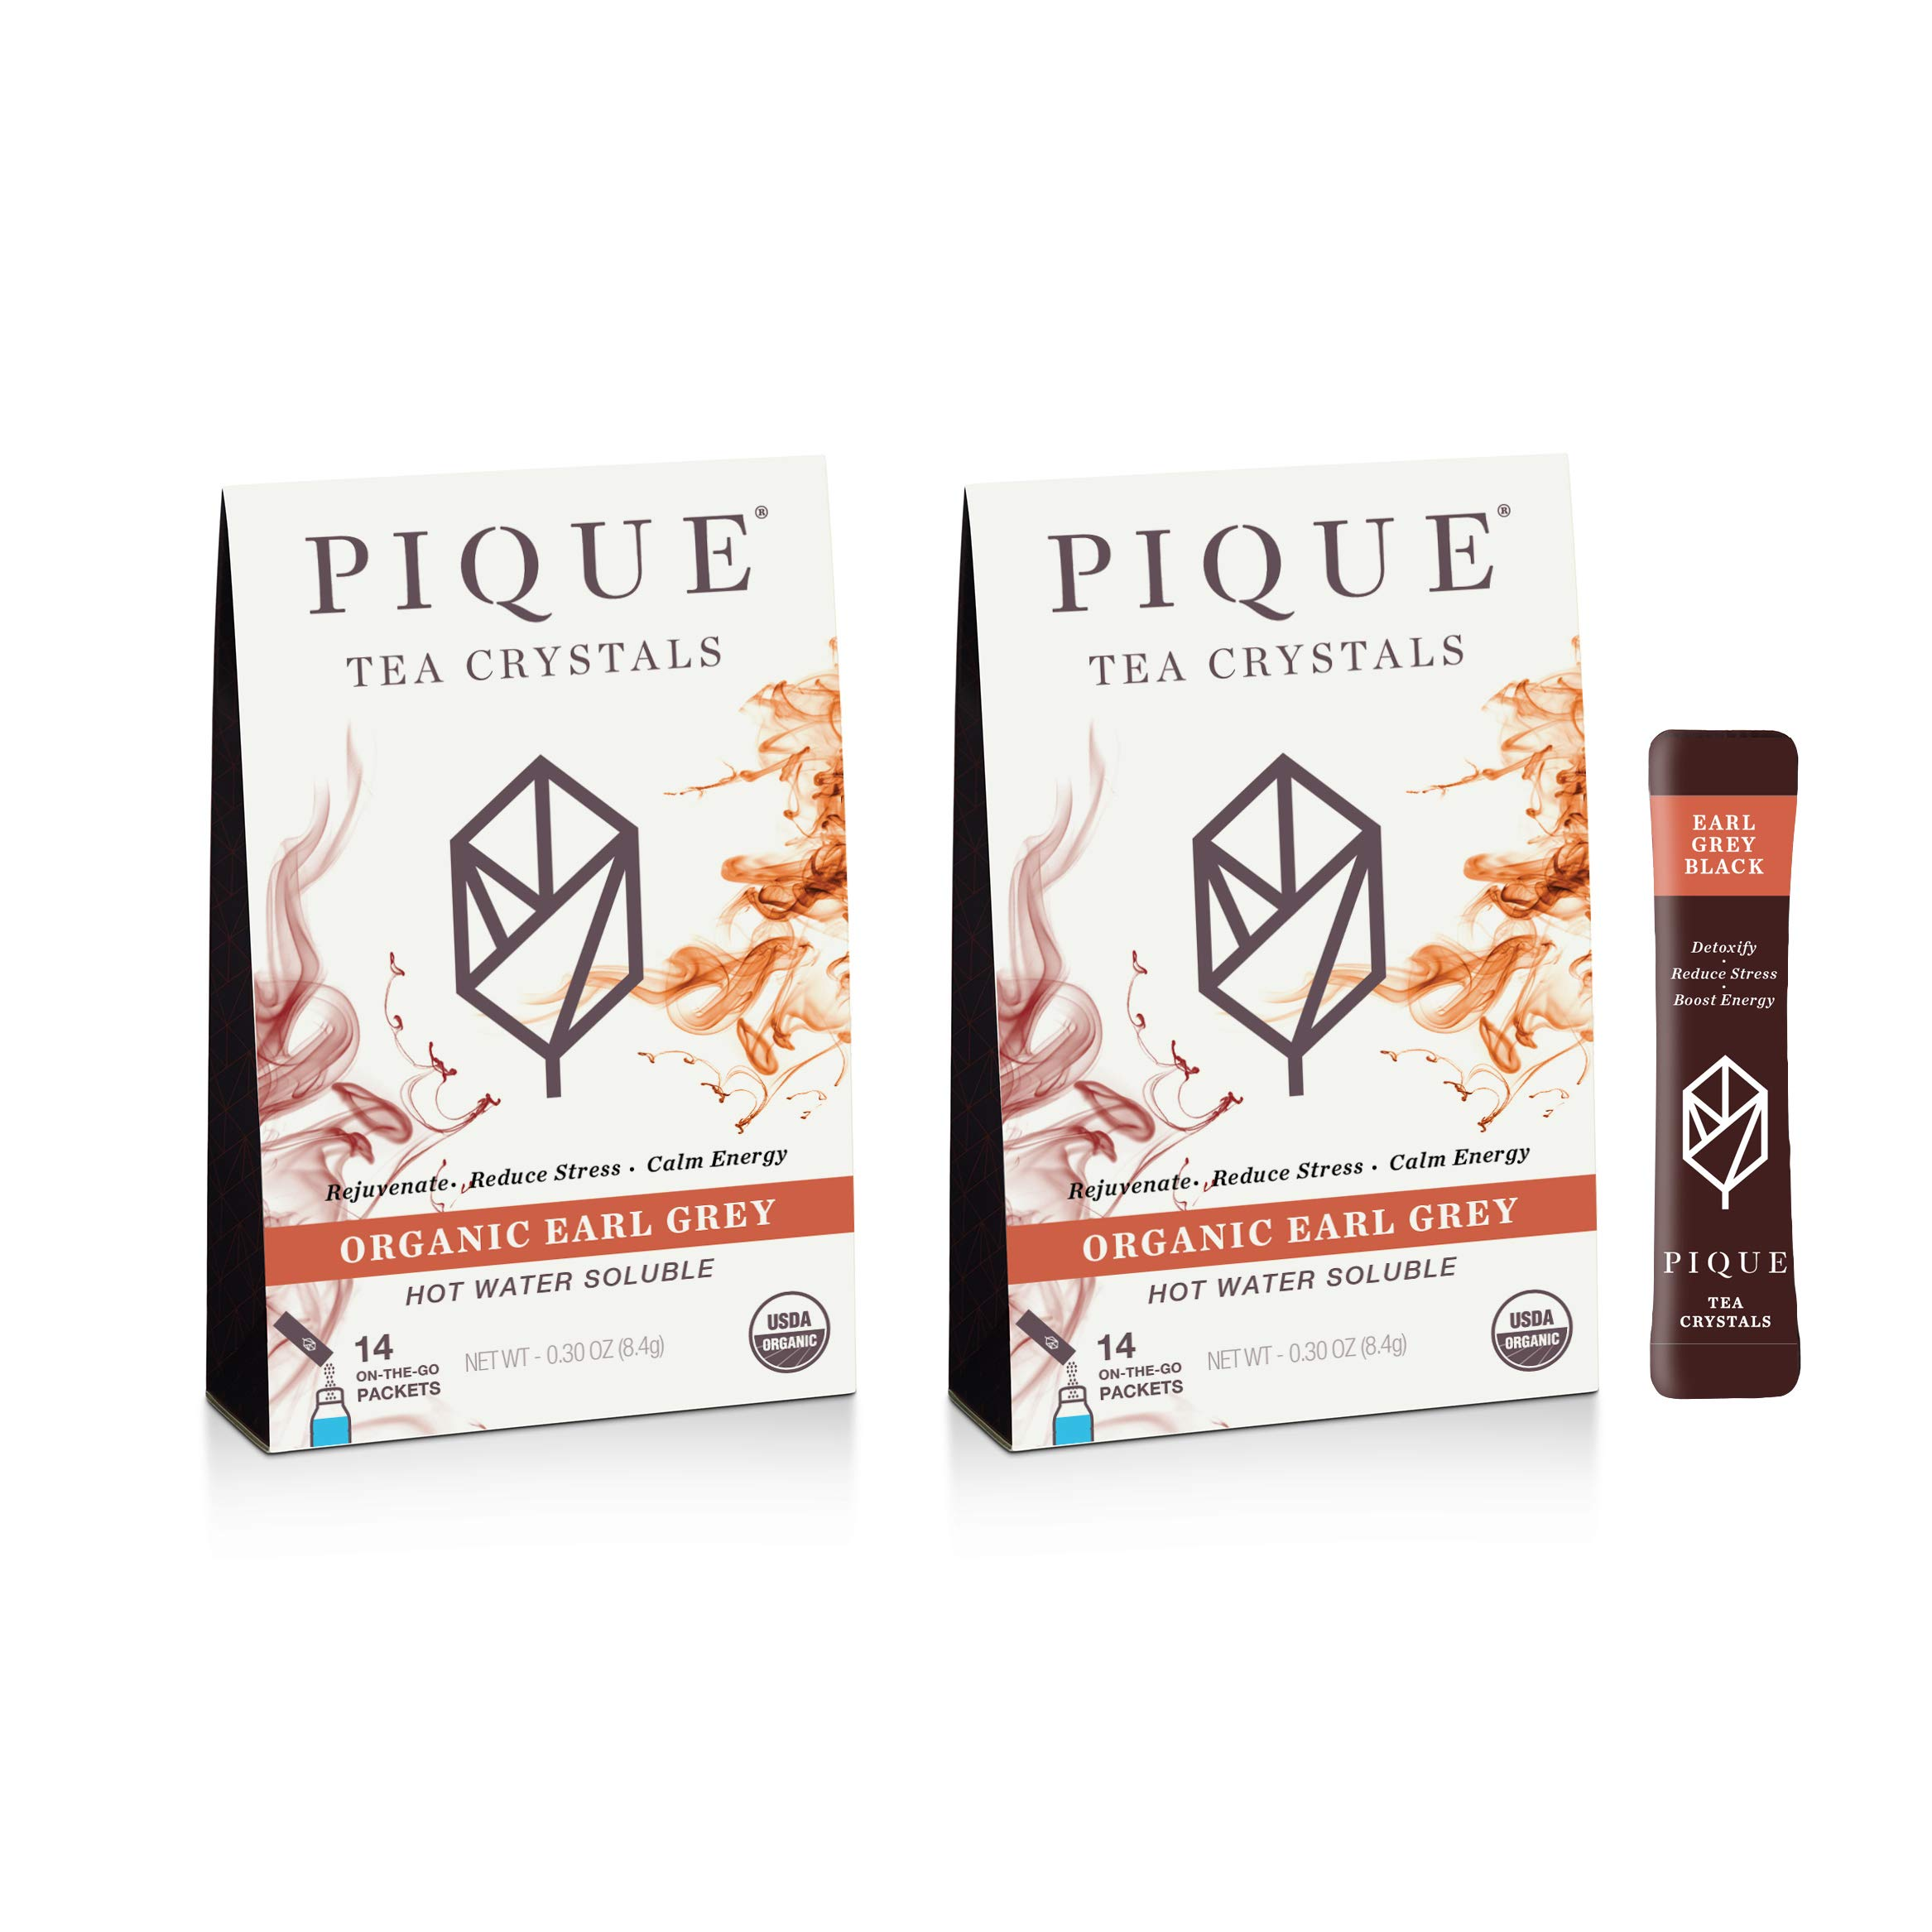 Pique Organic Earl Gray Black Tea Crystals, Antioxidants, Energy, Gut Health, 28 Single Serve Sticks (Pack of 2)